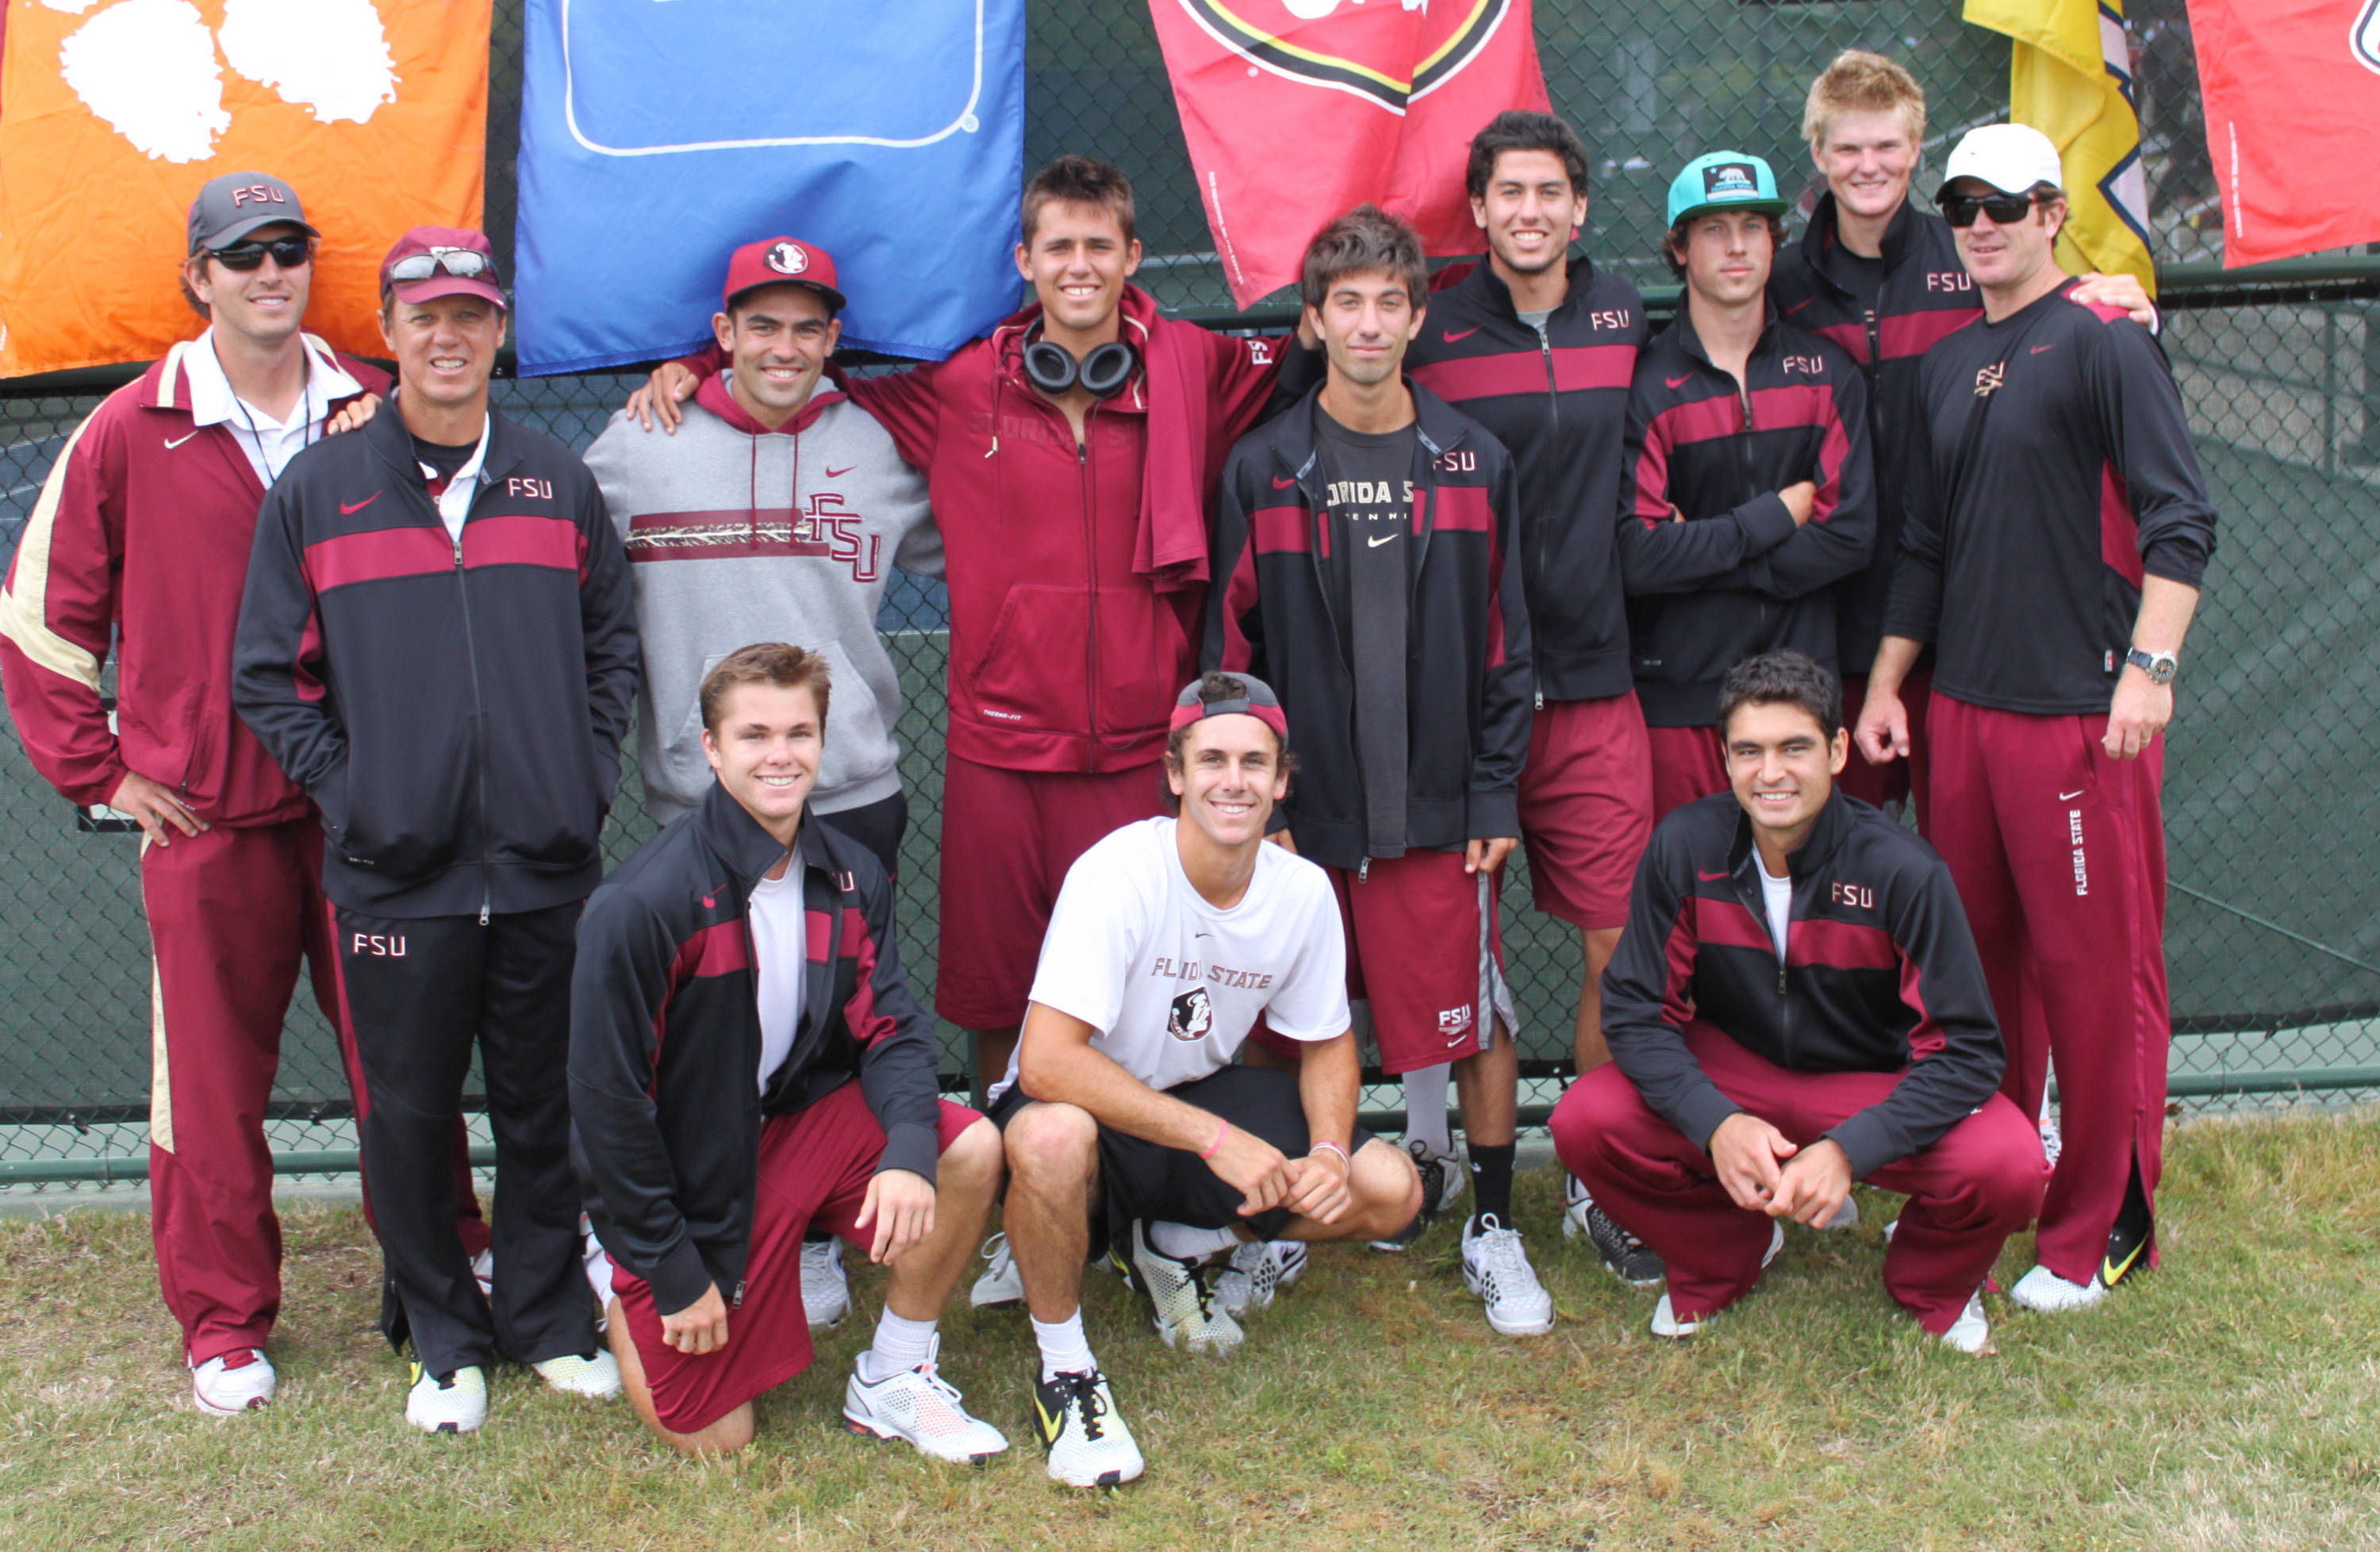 Team after the 4-0 win against Miami.